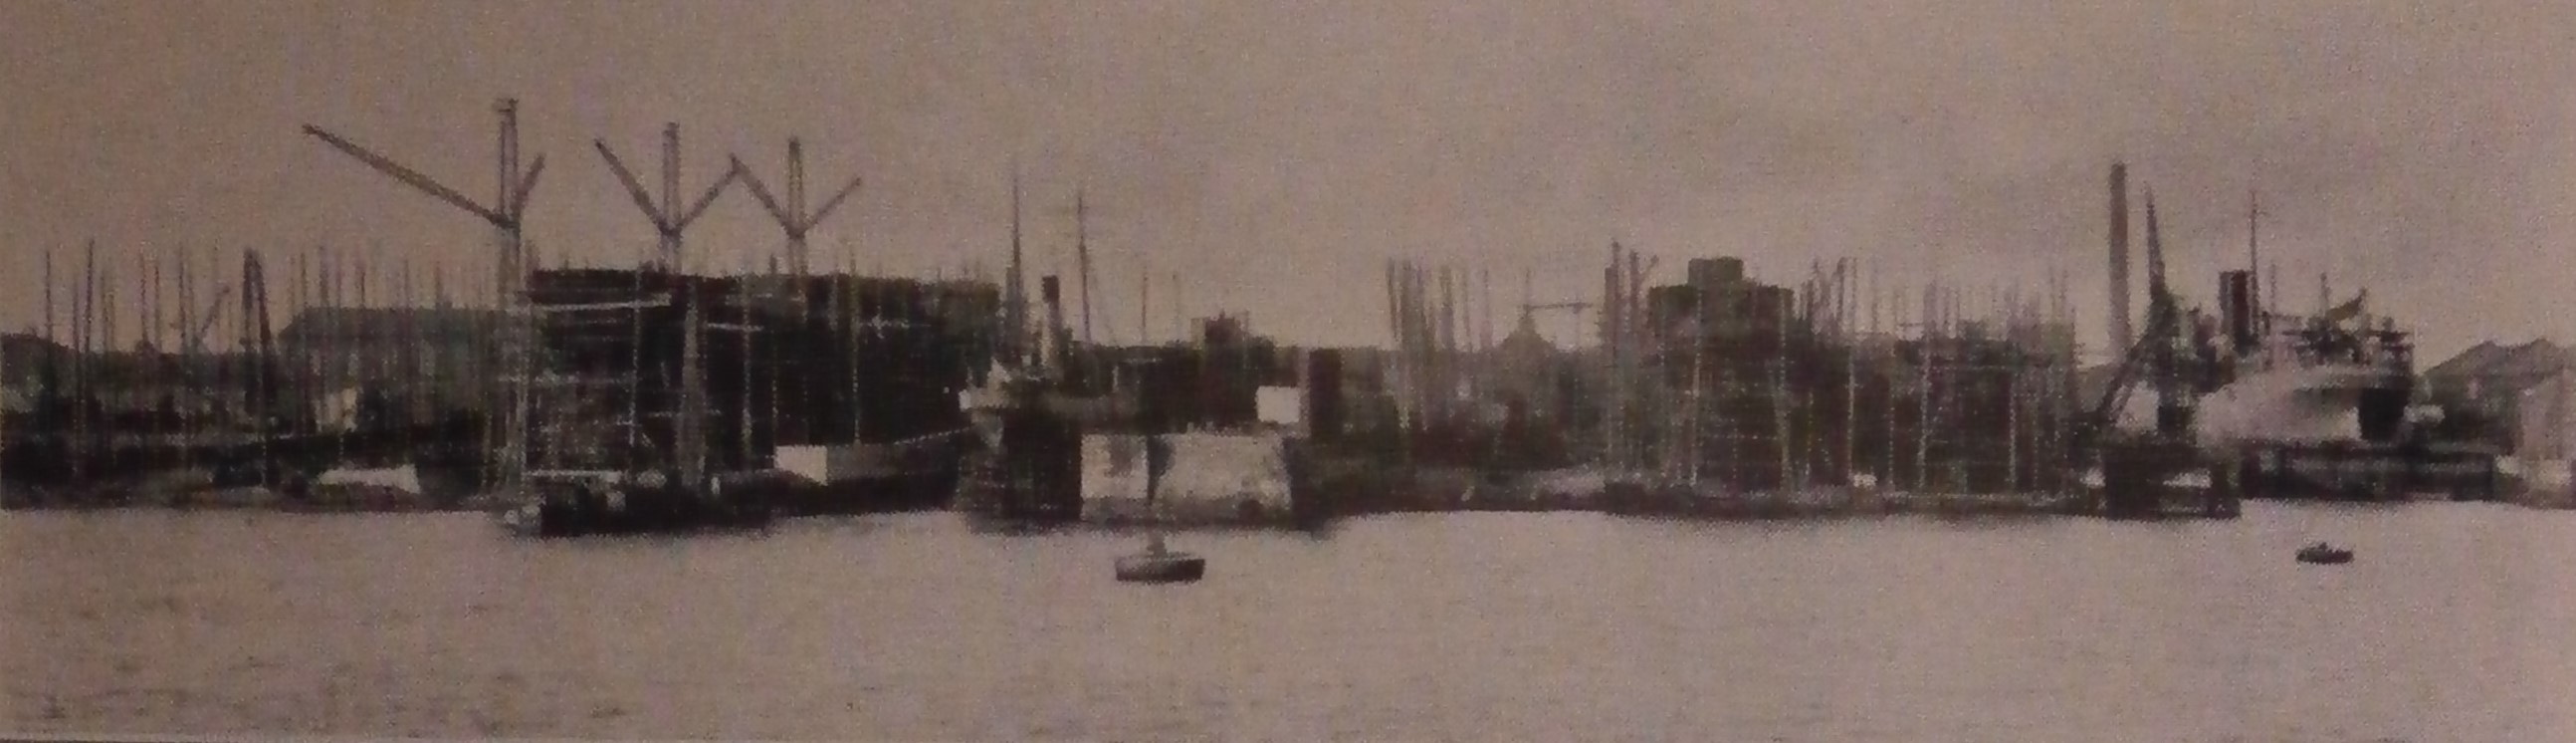 The Dublin Dockyard shipbuilders - with steamer in Graving dock